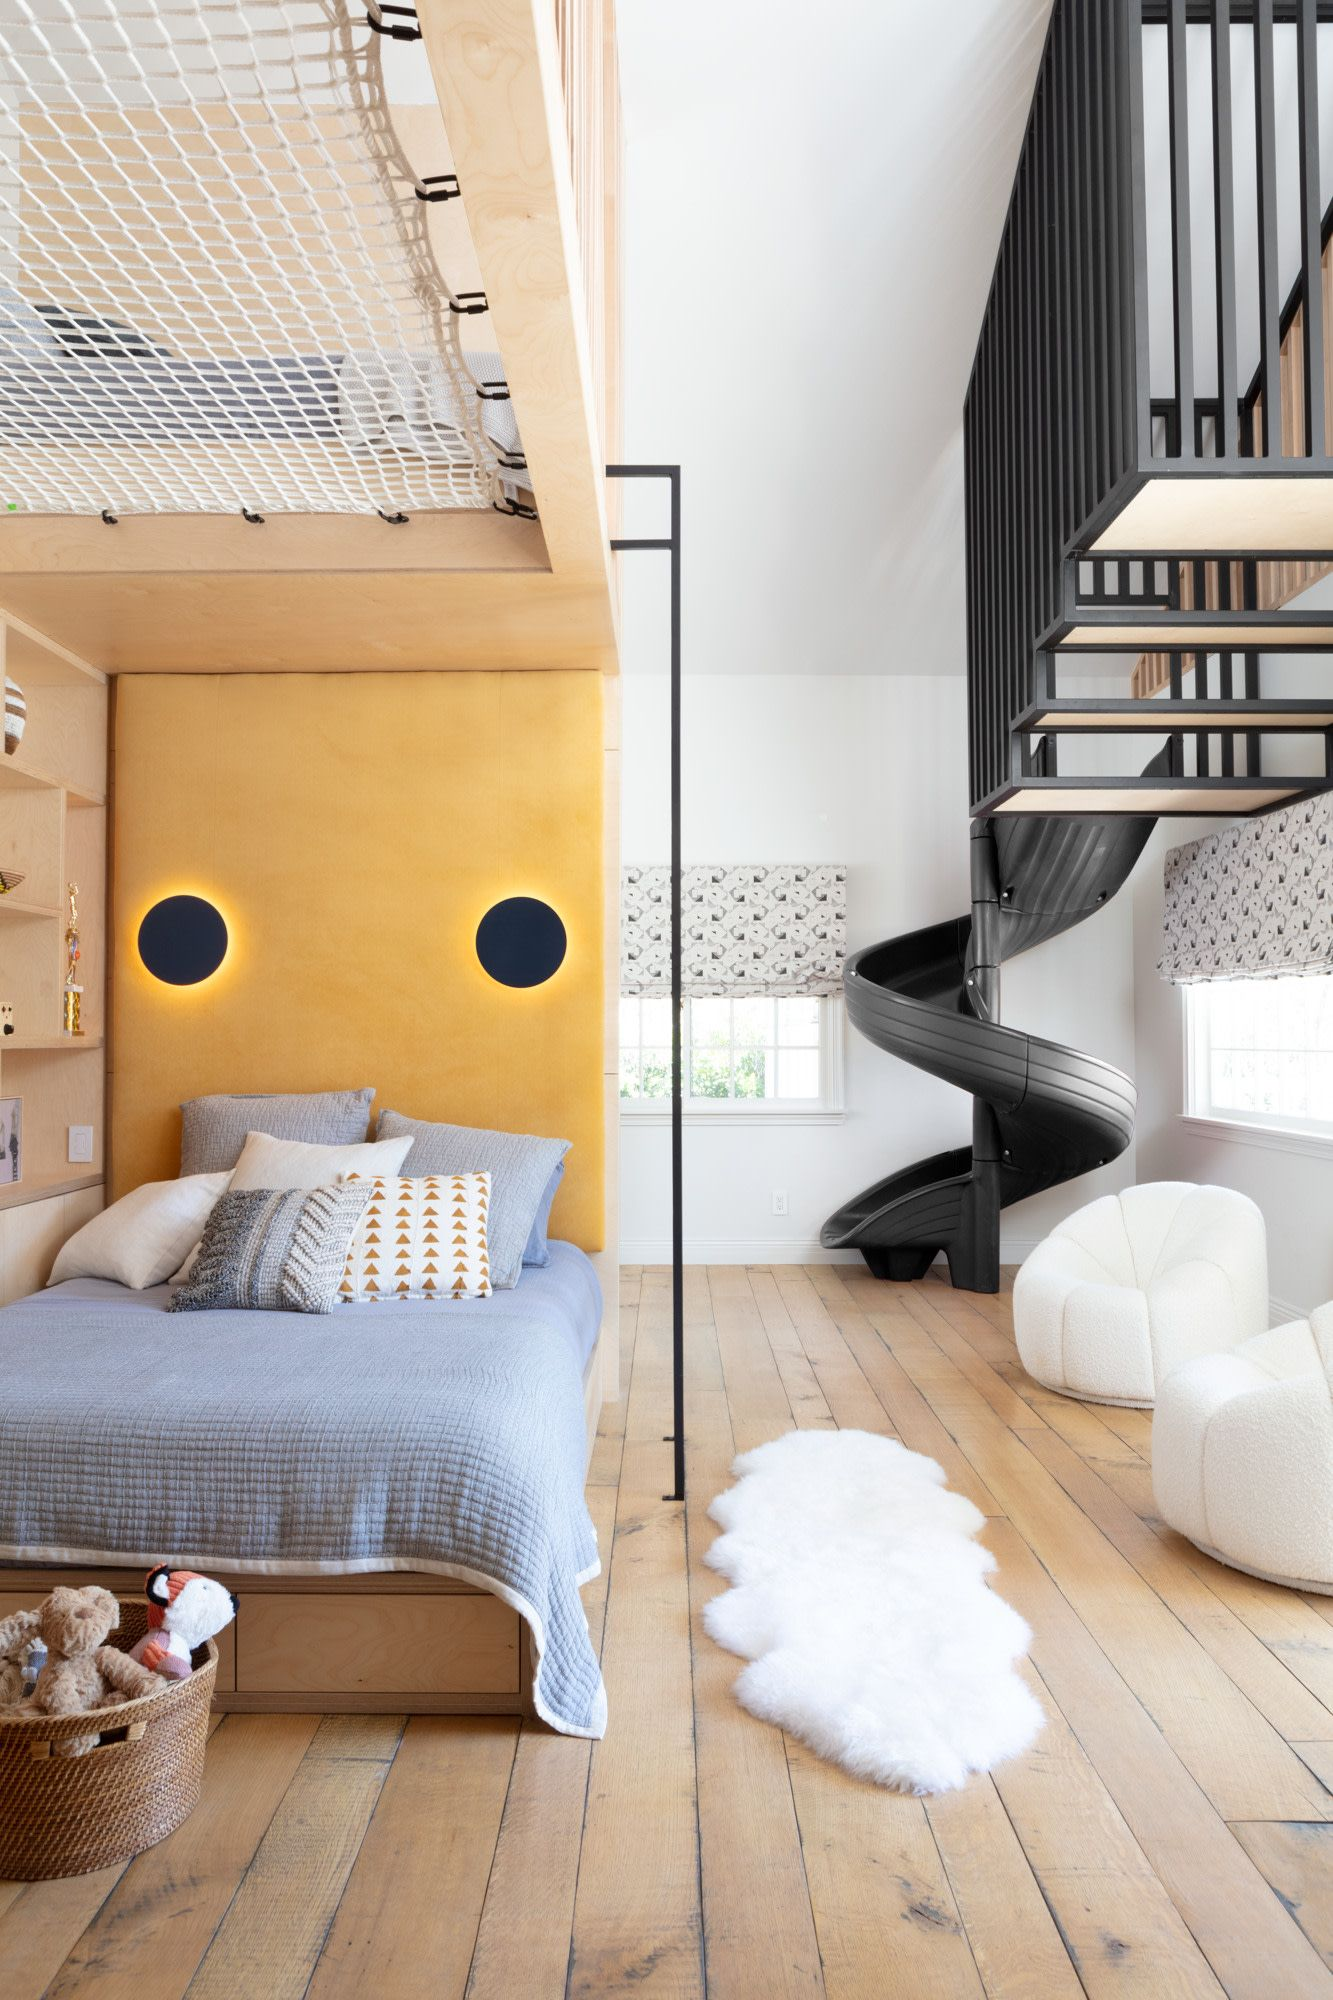 31 Best Boys Bedroom Ideas in 2020 - Boys Room Design on A Small Room Cheap Cool Bedroom Ideas For Teenage Guys Small Rooms  id=22814